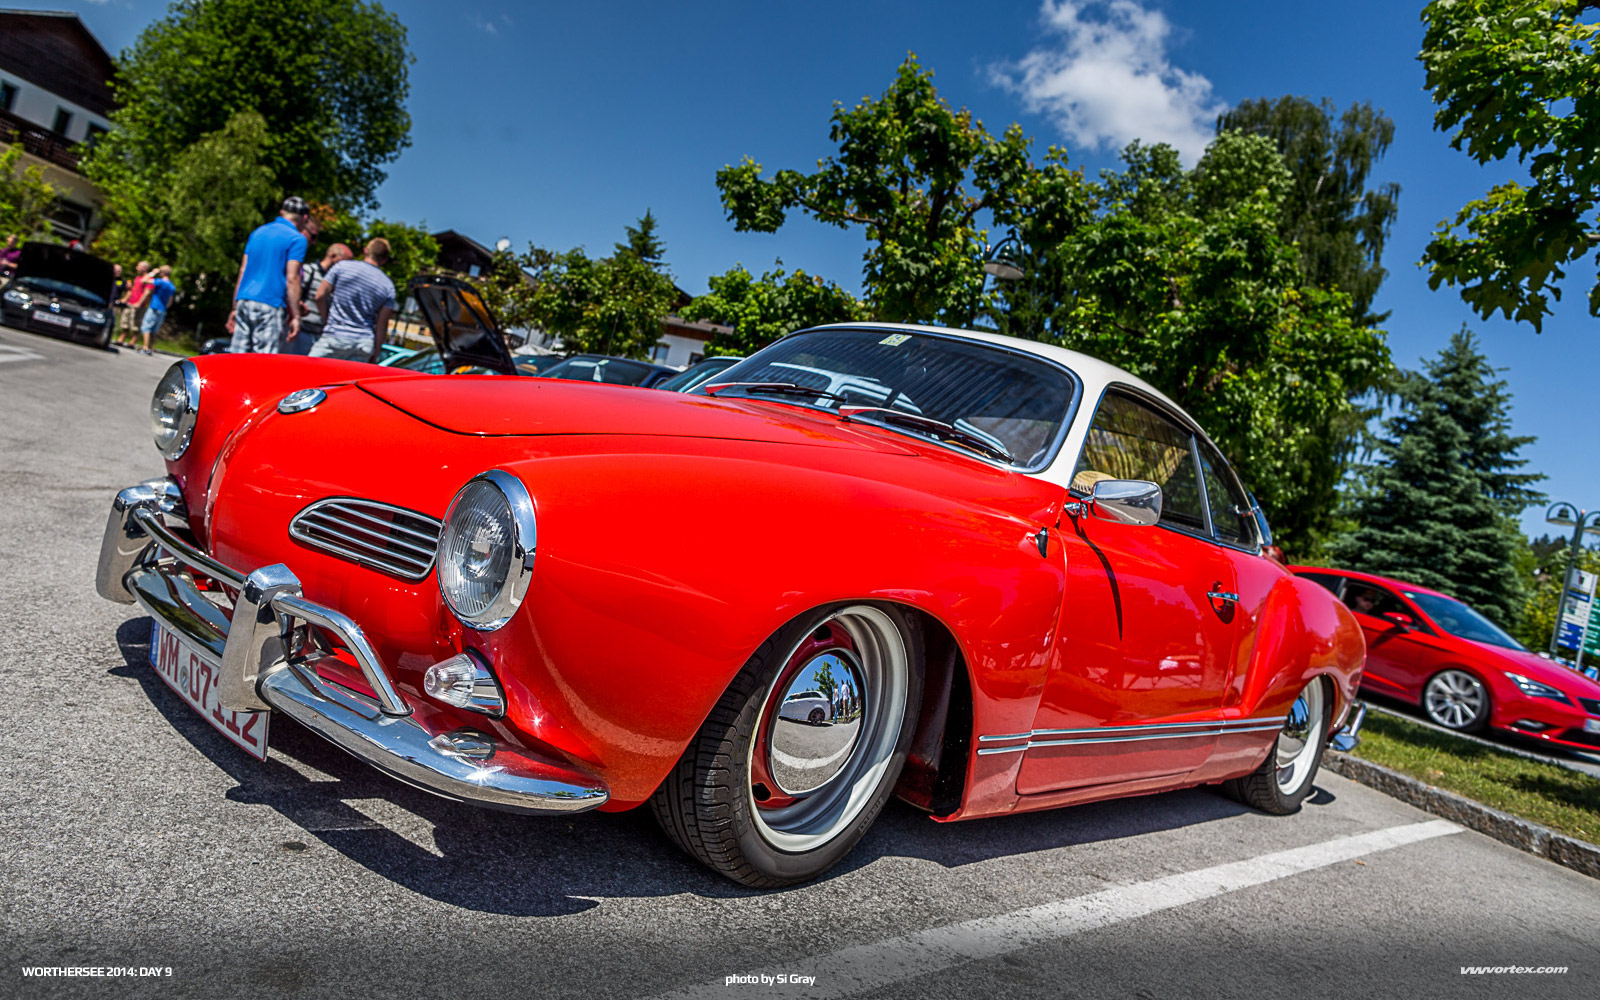 2014-Worthersee-Day-9-Si-Gray-379